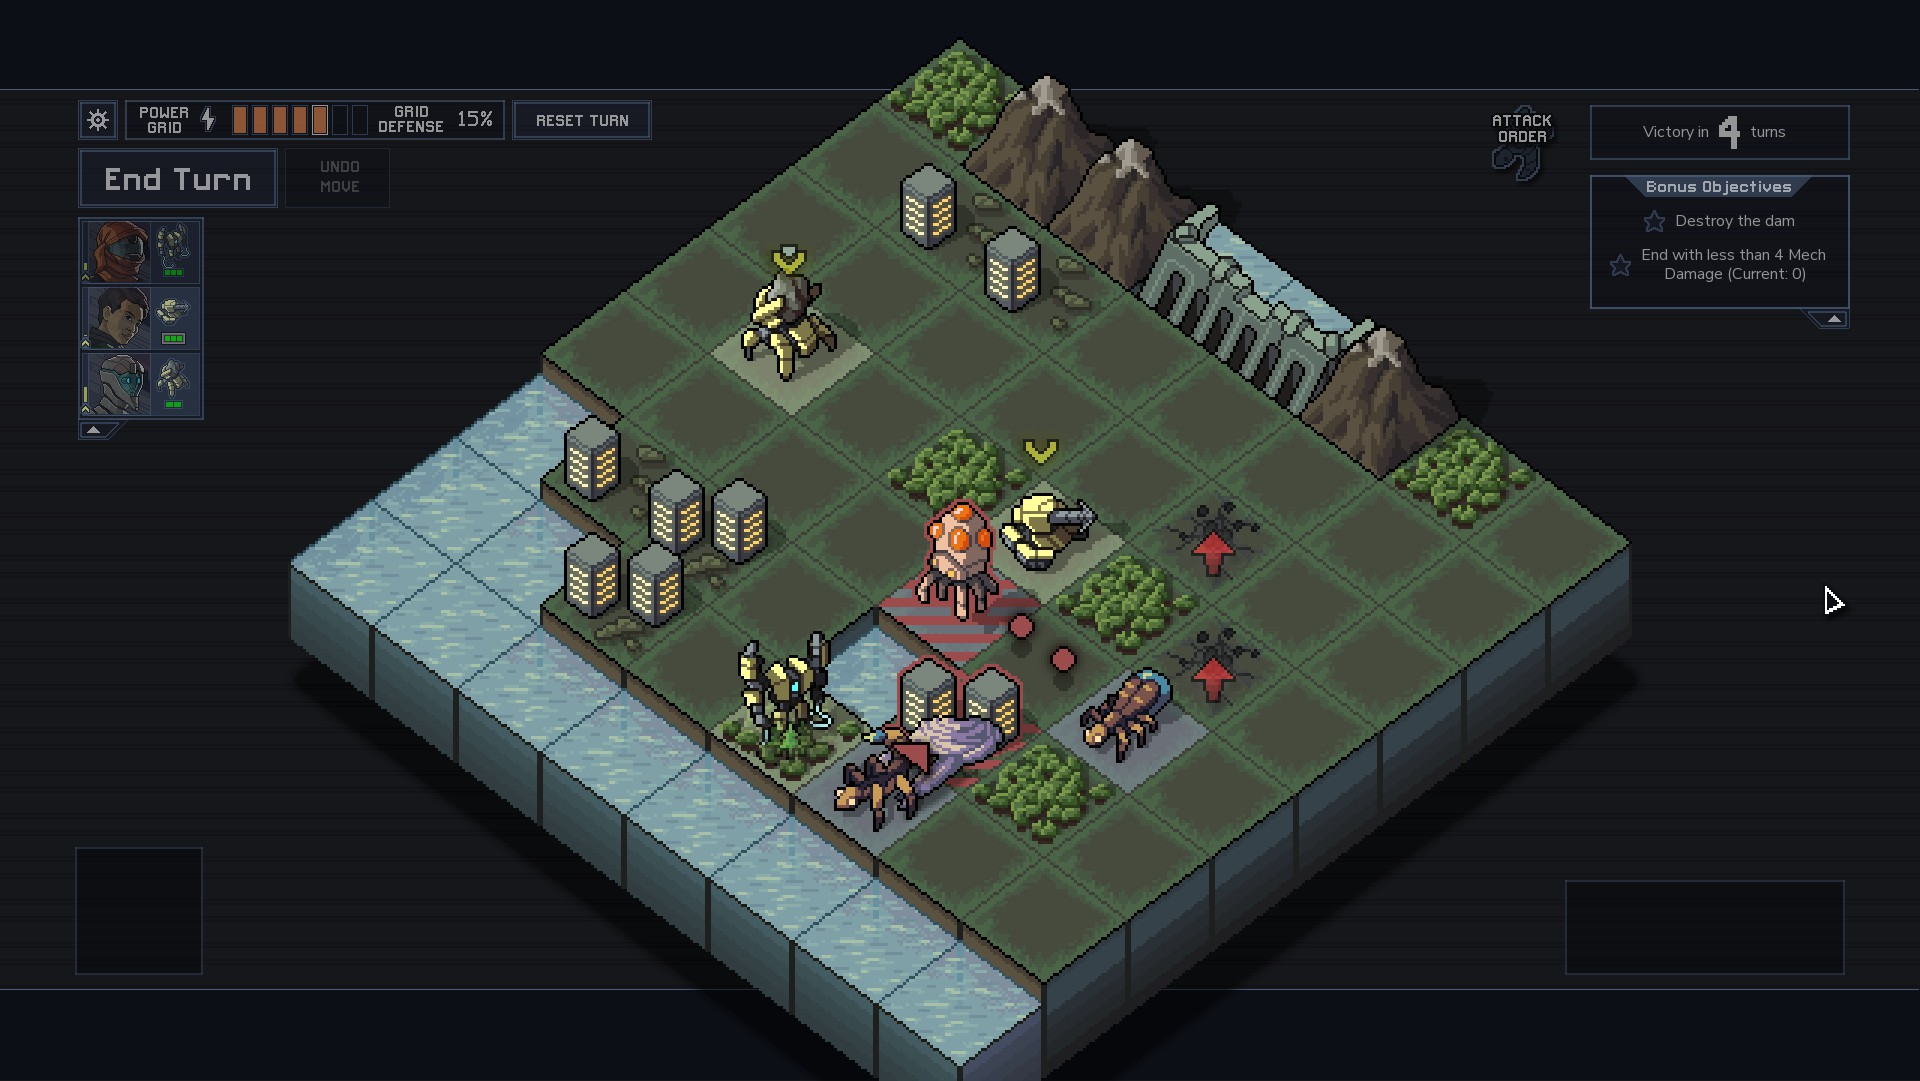 Into the Breach - Top gier komputerowych